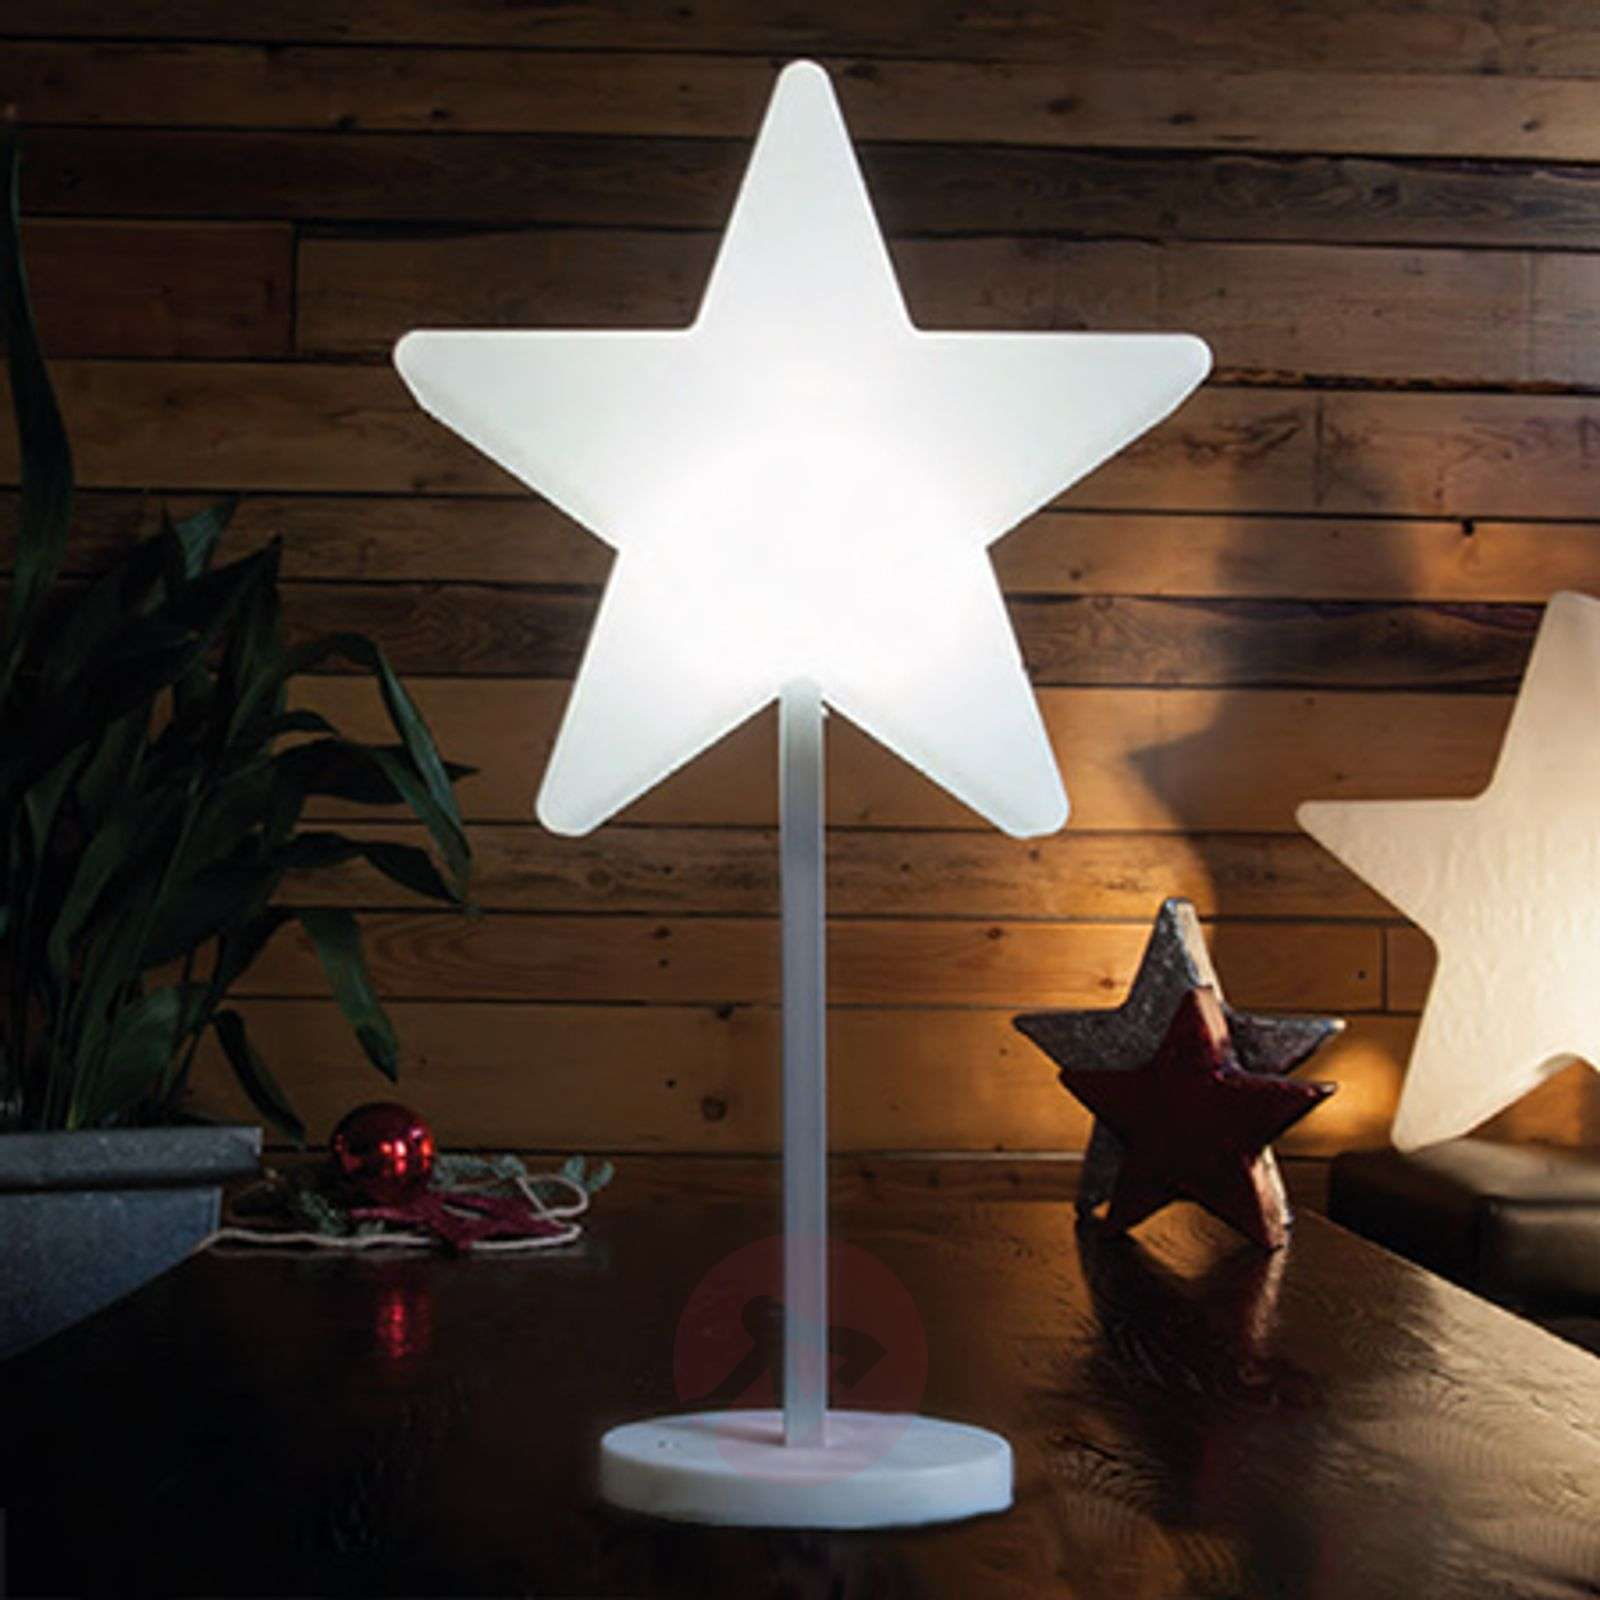 Mooie LED-decoratielamp Shinig Window Star-1004095-01